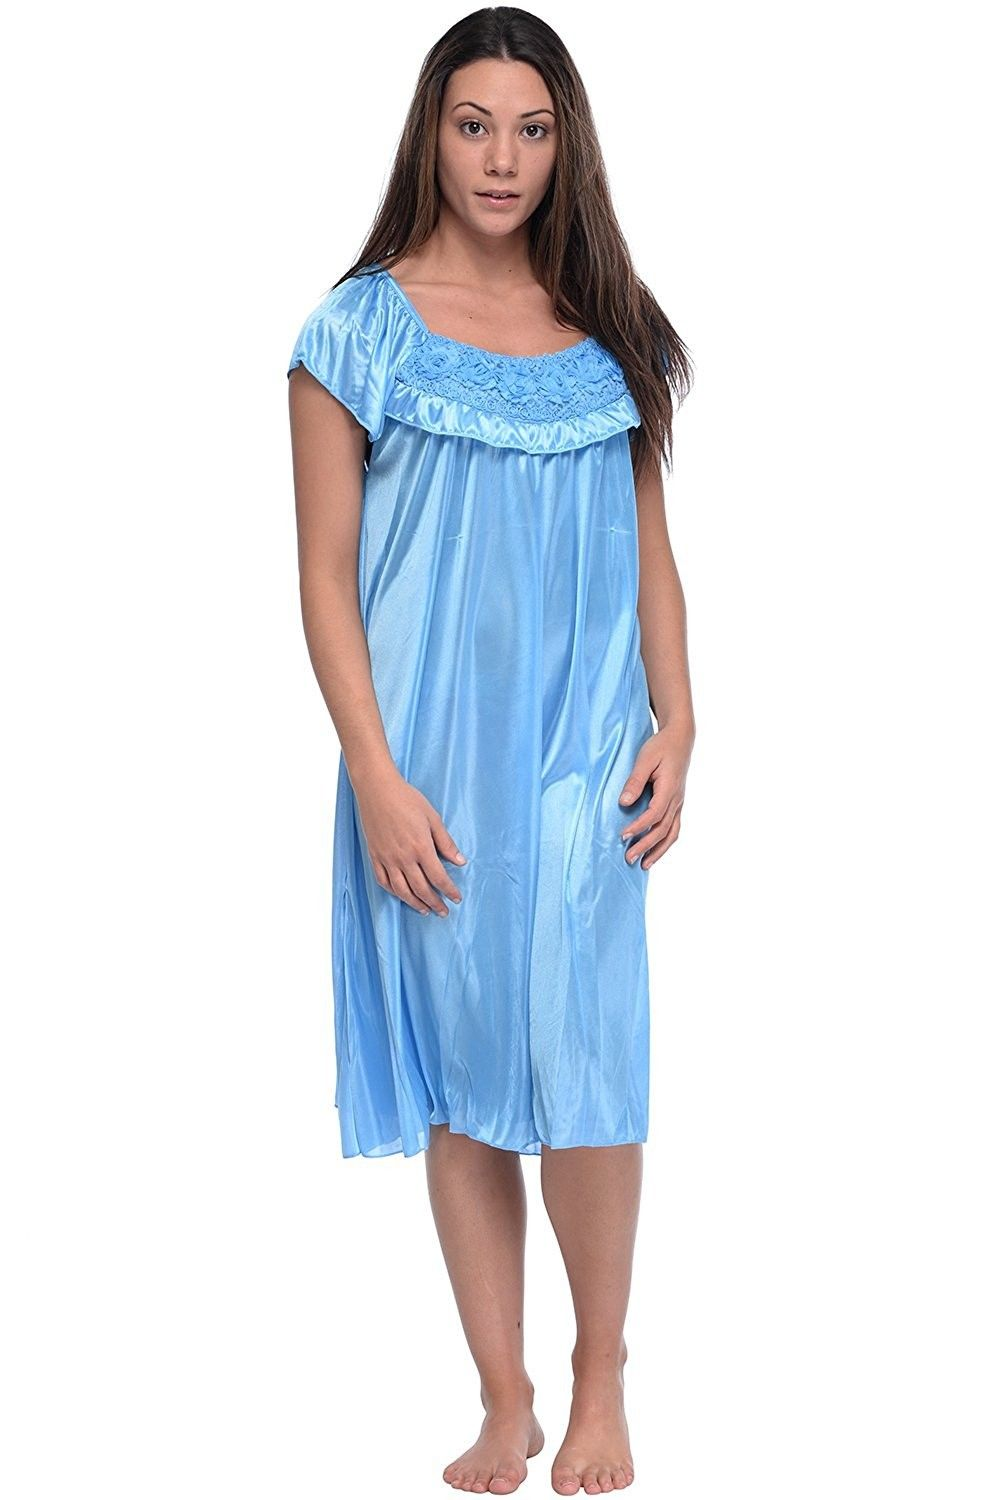 496635f7e5 Buy Women's Cap Sleeve Flower Silky Tricot Nightgown - Blue - CR12CMS4A13  and Others Best Selling Women's Sleepshirts with Affordable Prices